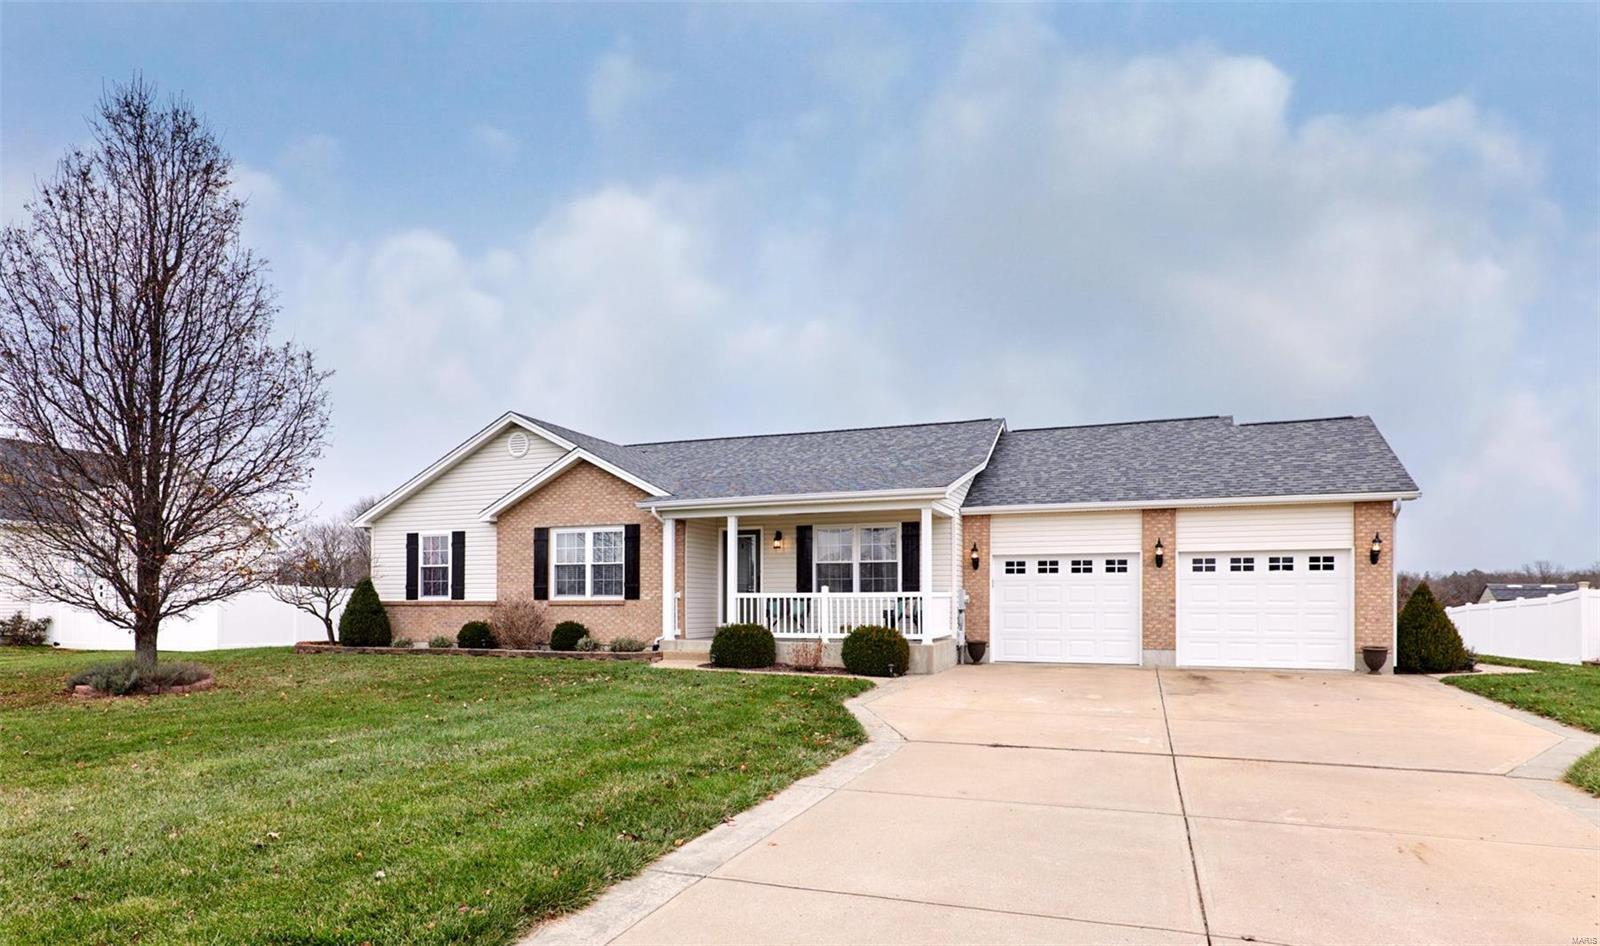 204 Allison Property Photo - Winfield, MO real estate listing